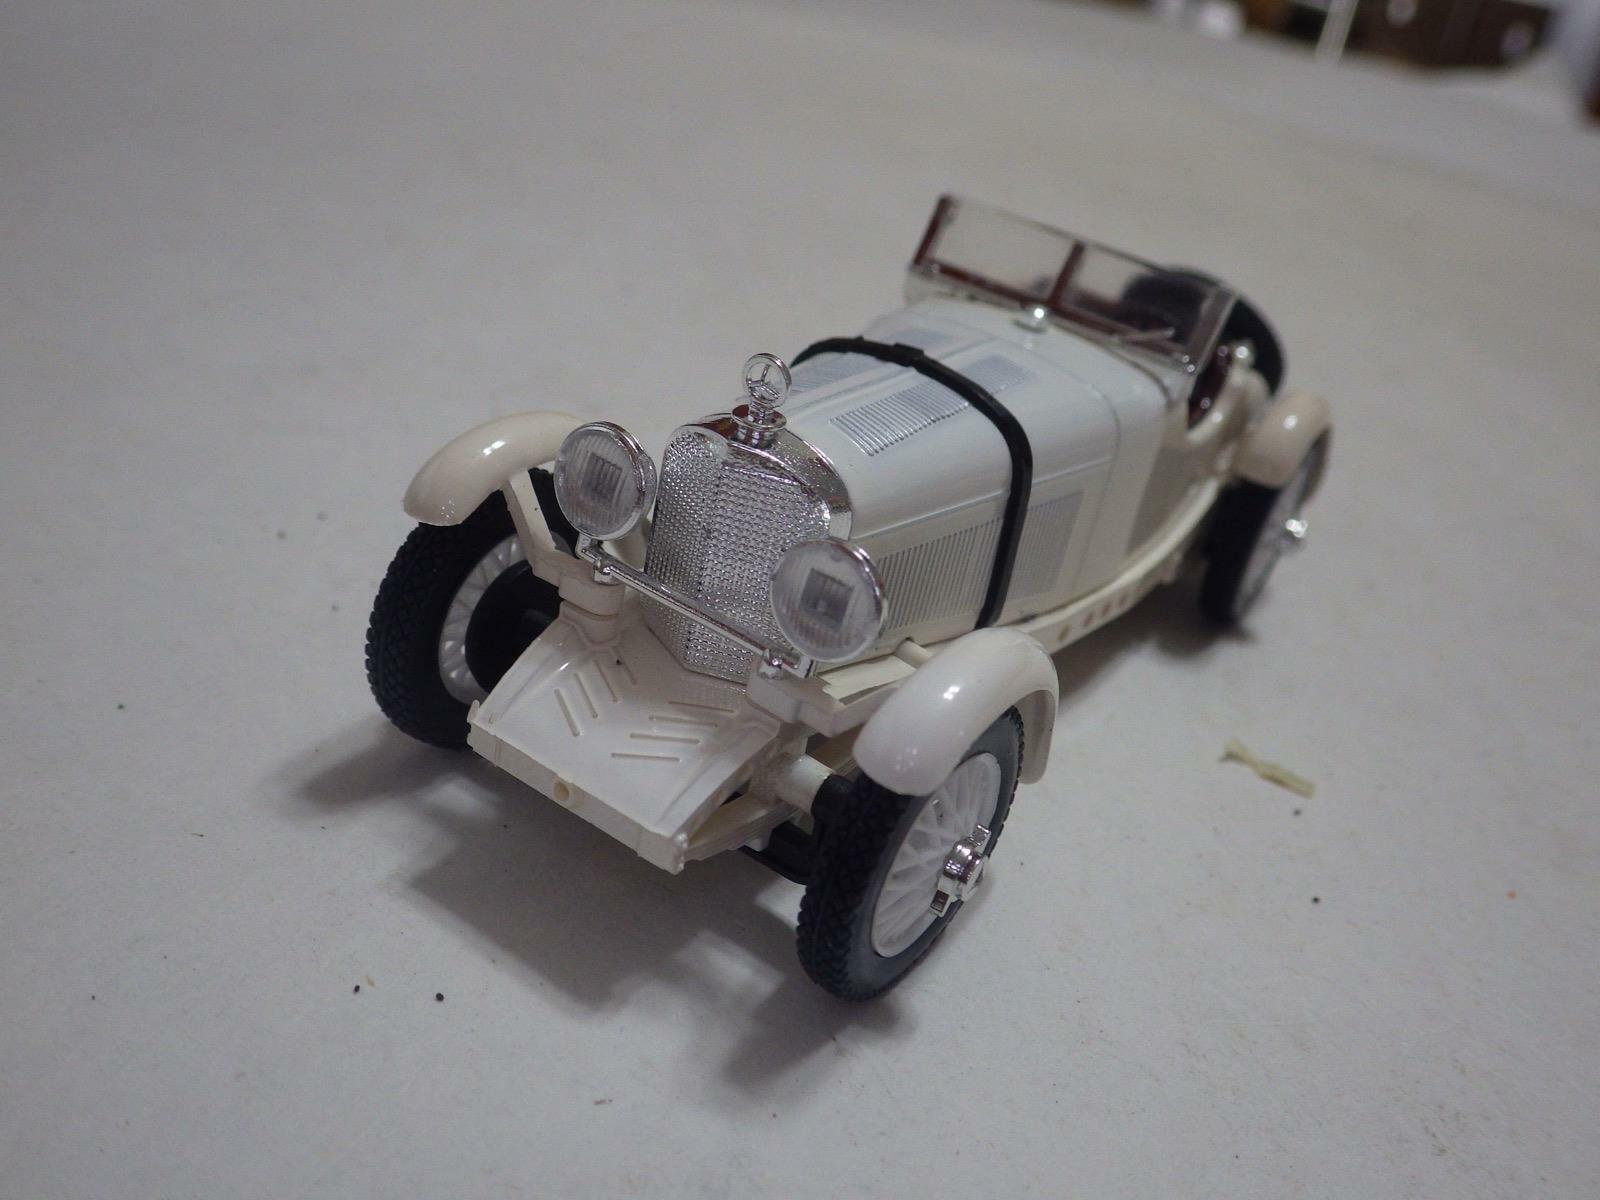 RIO 79 (Italie) BLANC MERCEDES-BENZ SSKL 1931 moulé sous pression en plastique 1 43 New in Box